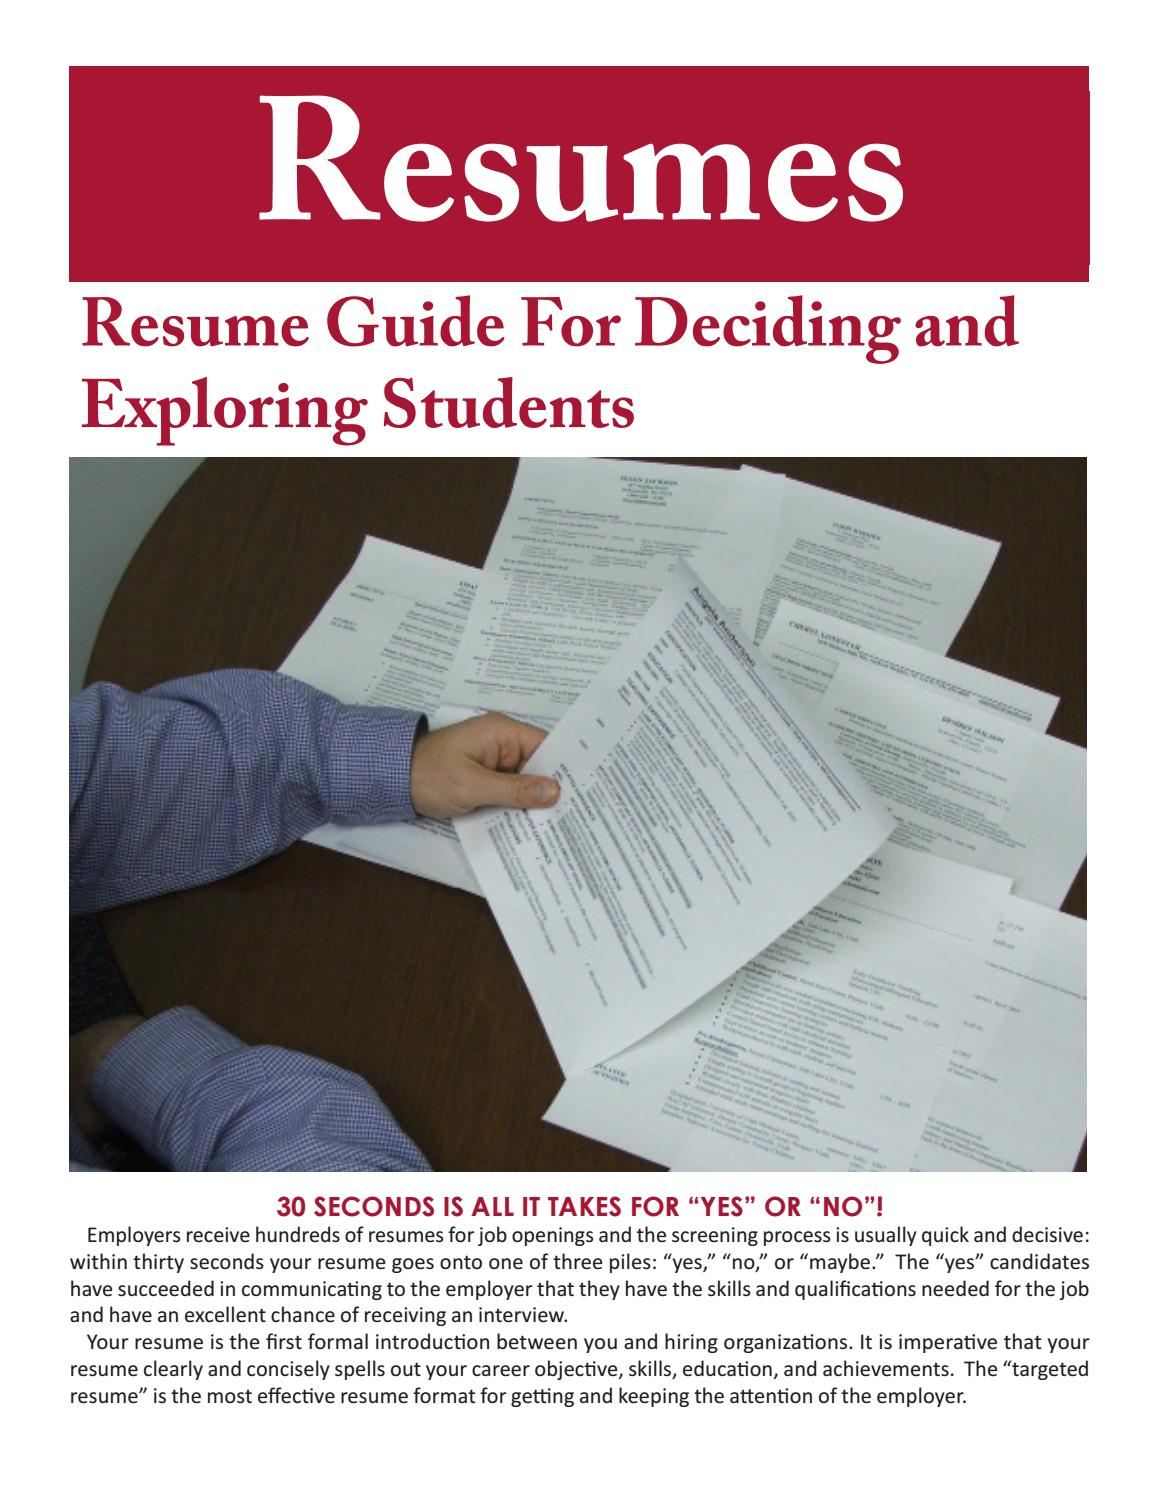 career services resumes curriculum vitae and cover letters alumni resume writing guide